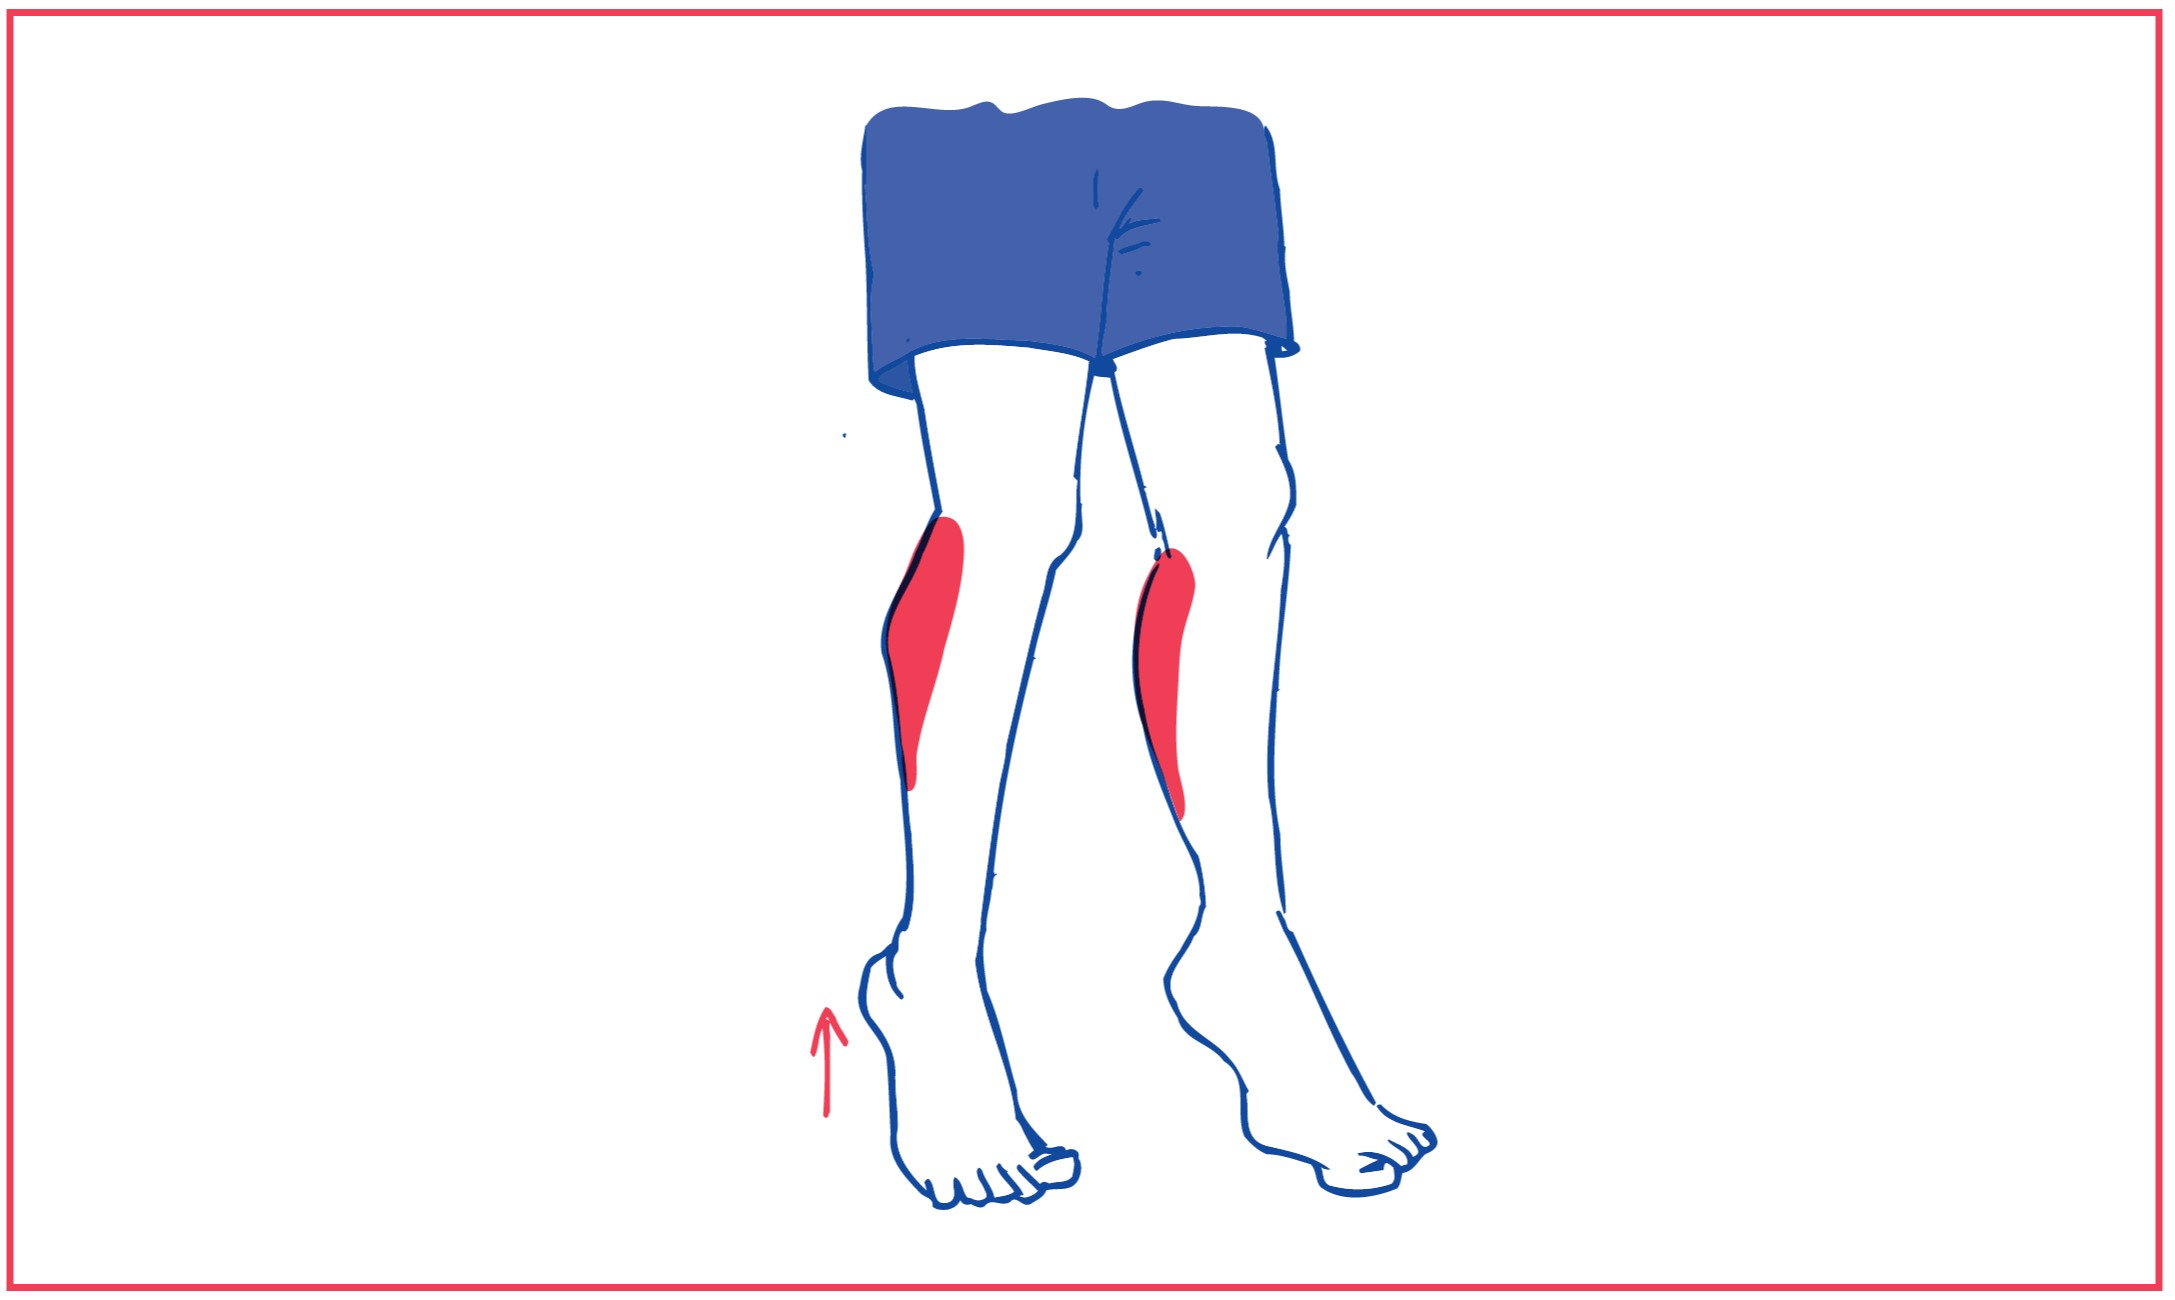 1. Weight bearing for ankles